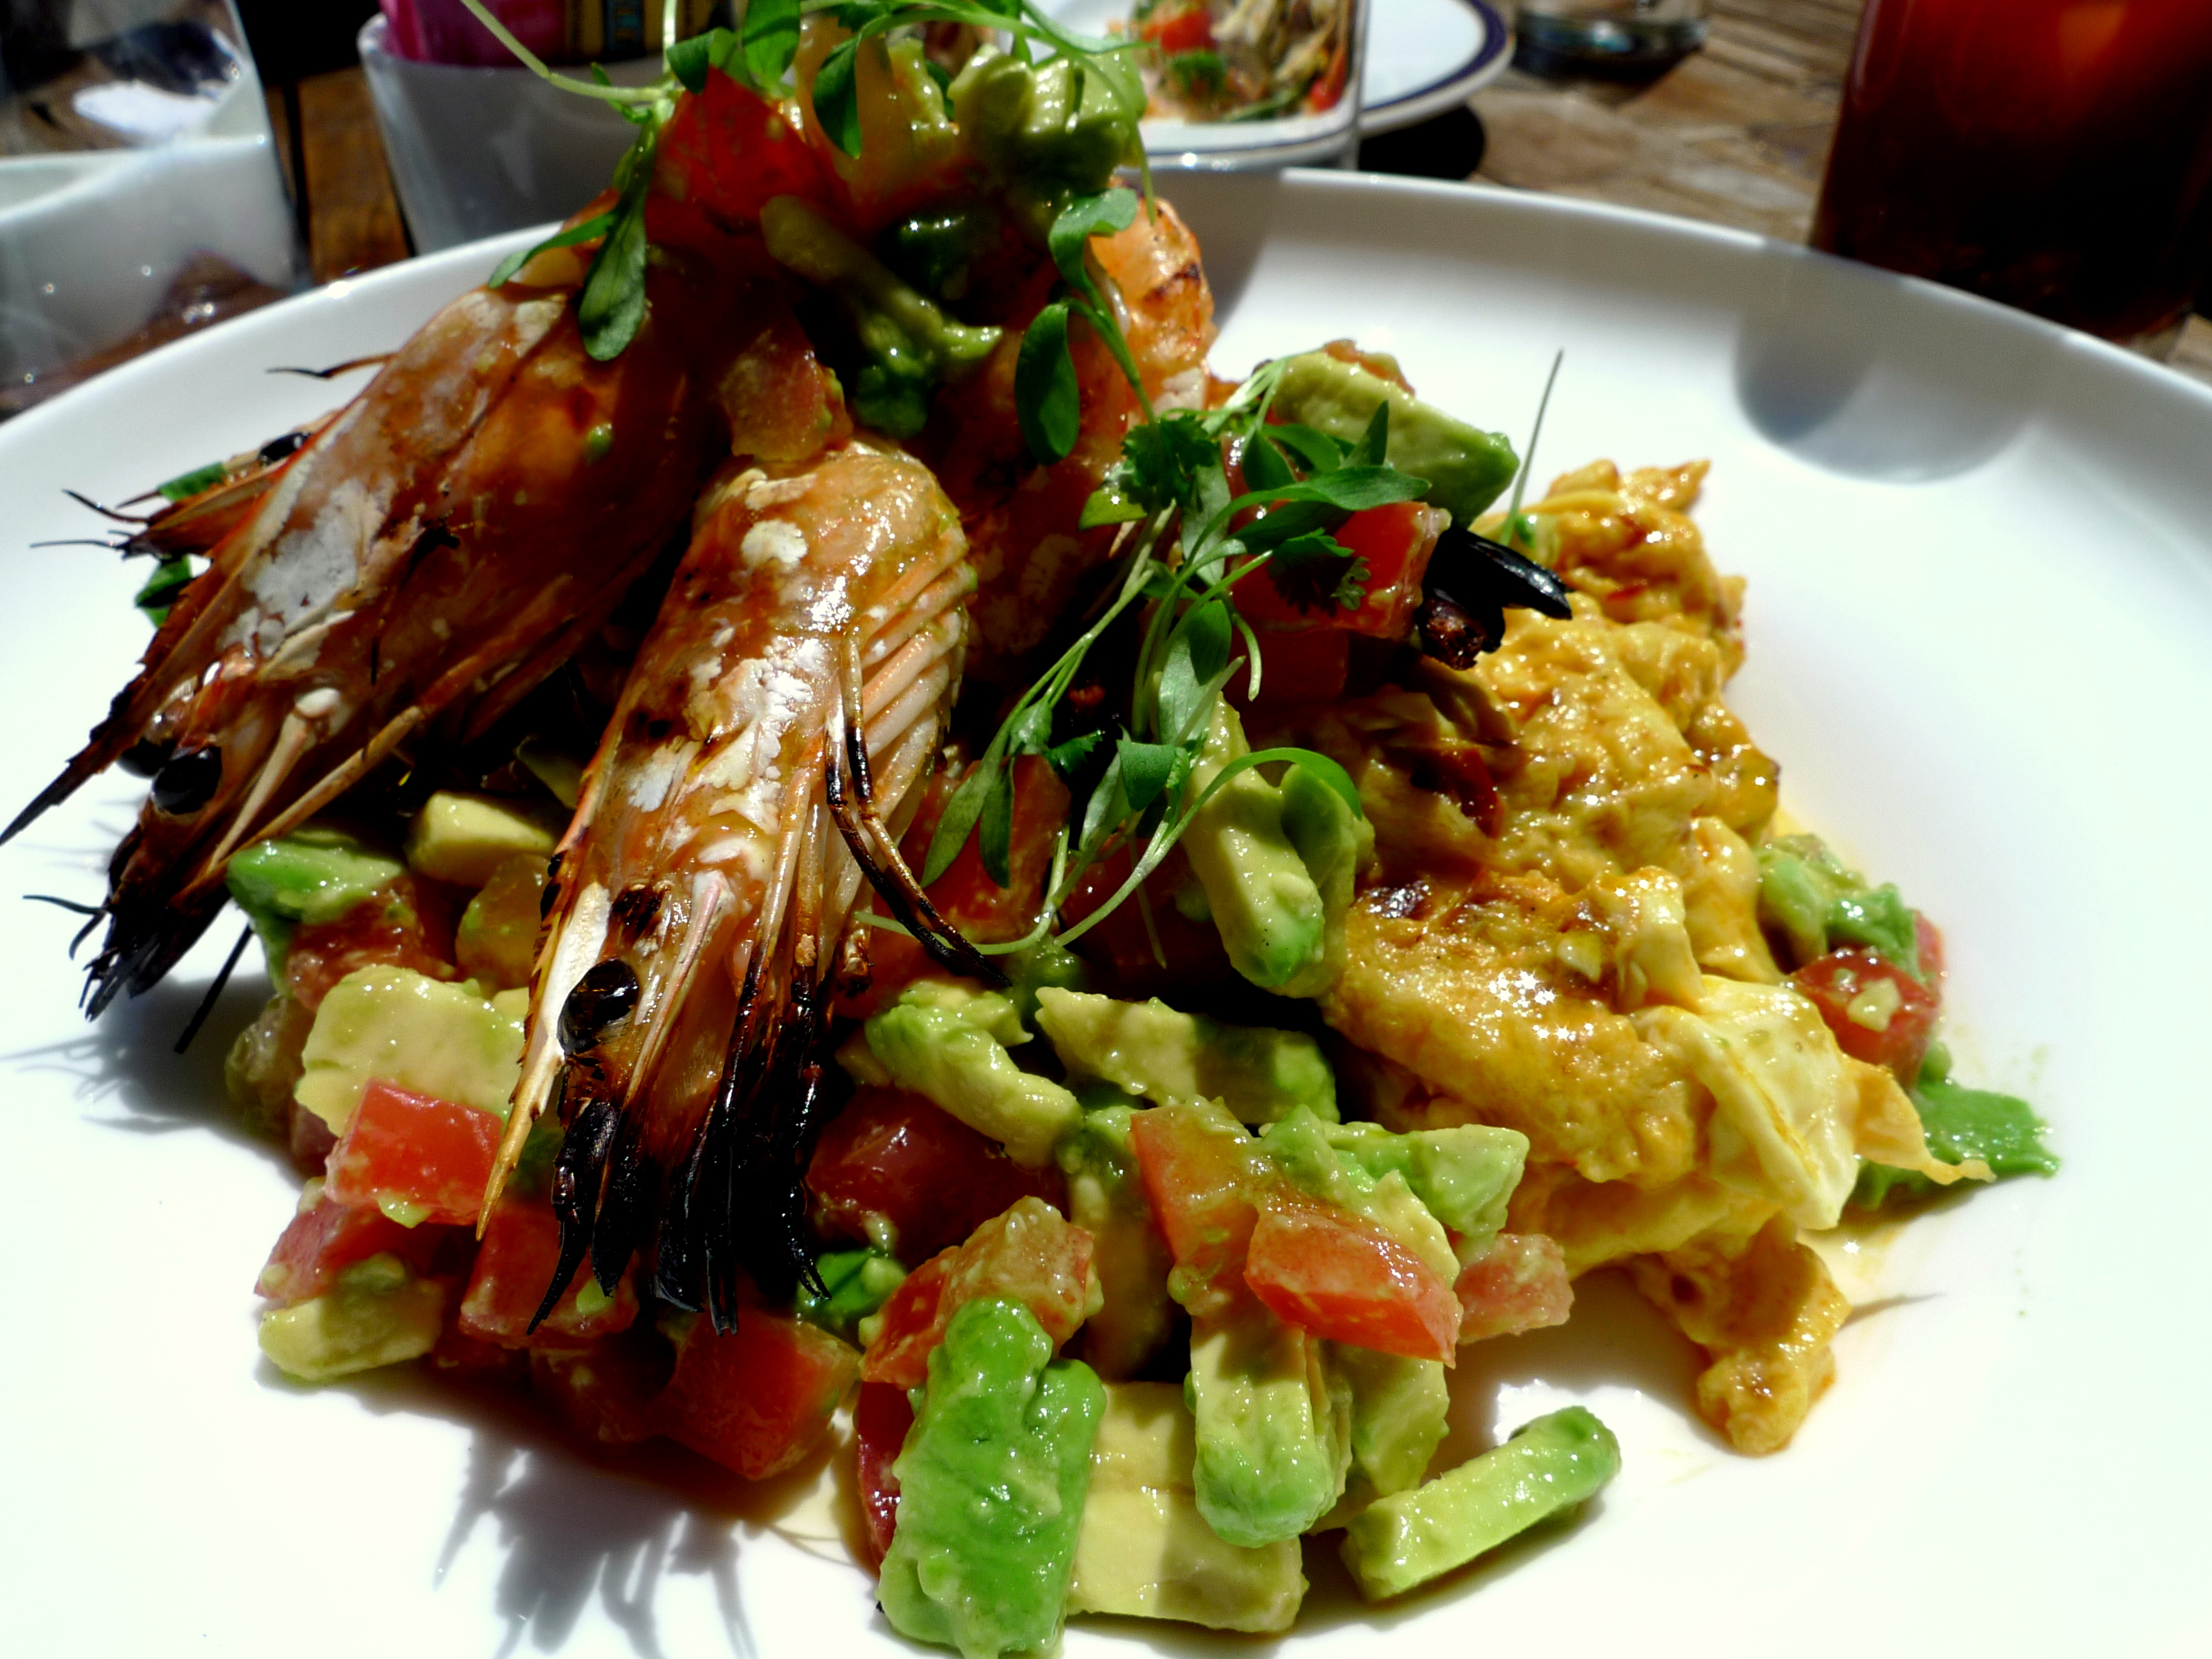 Grilled Sambal Prawns & Scrambled Eggs with avocado and tomato salad